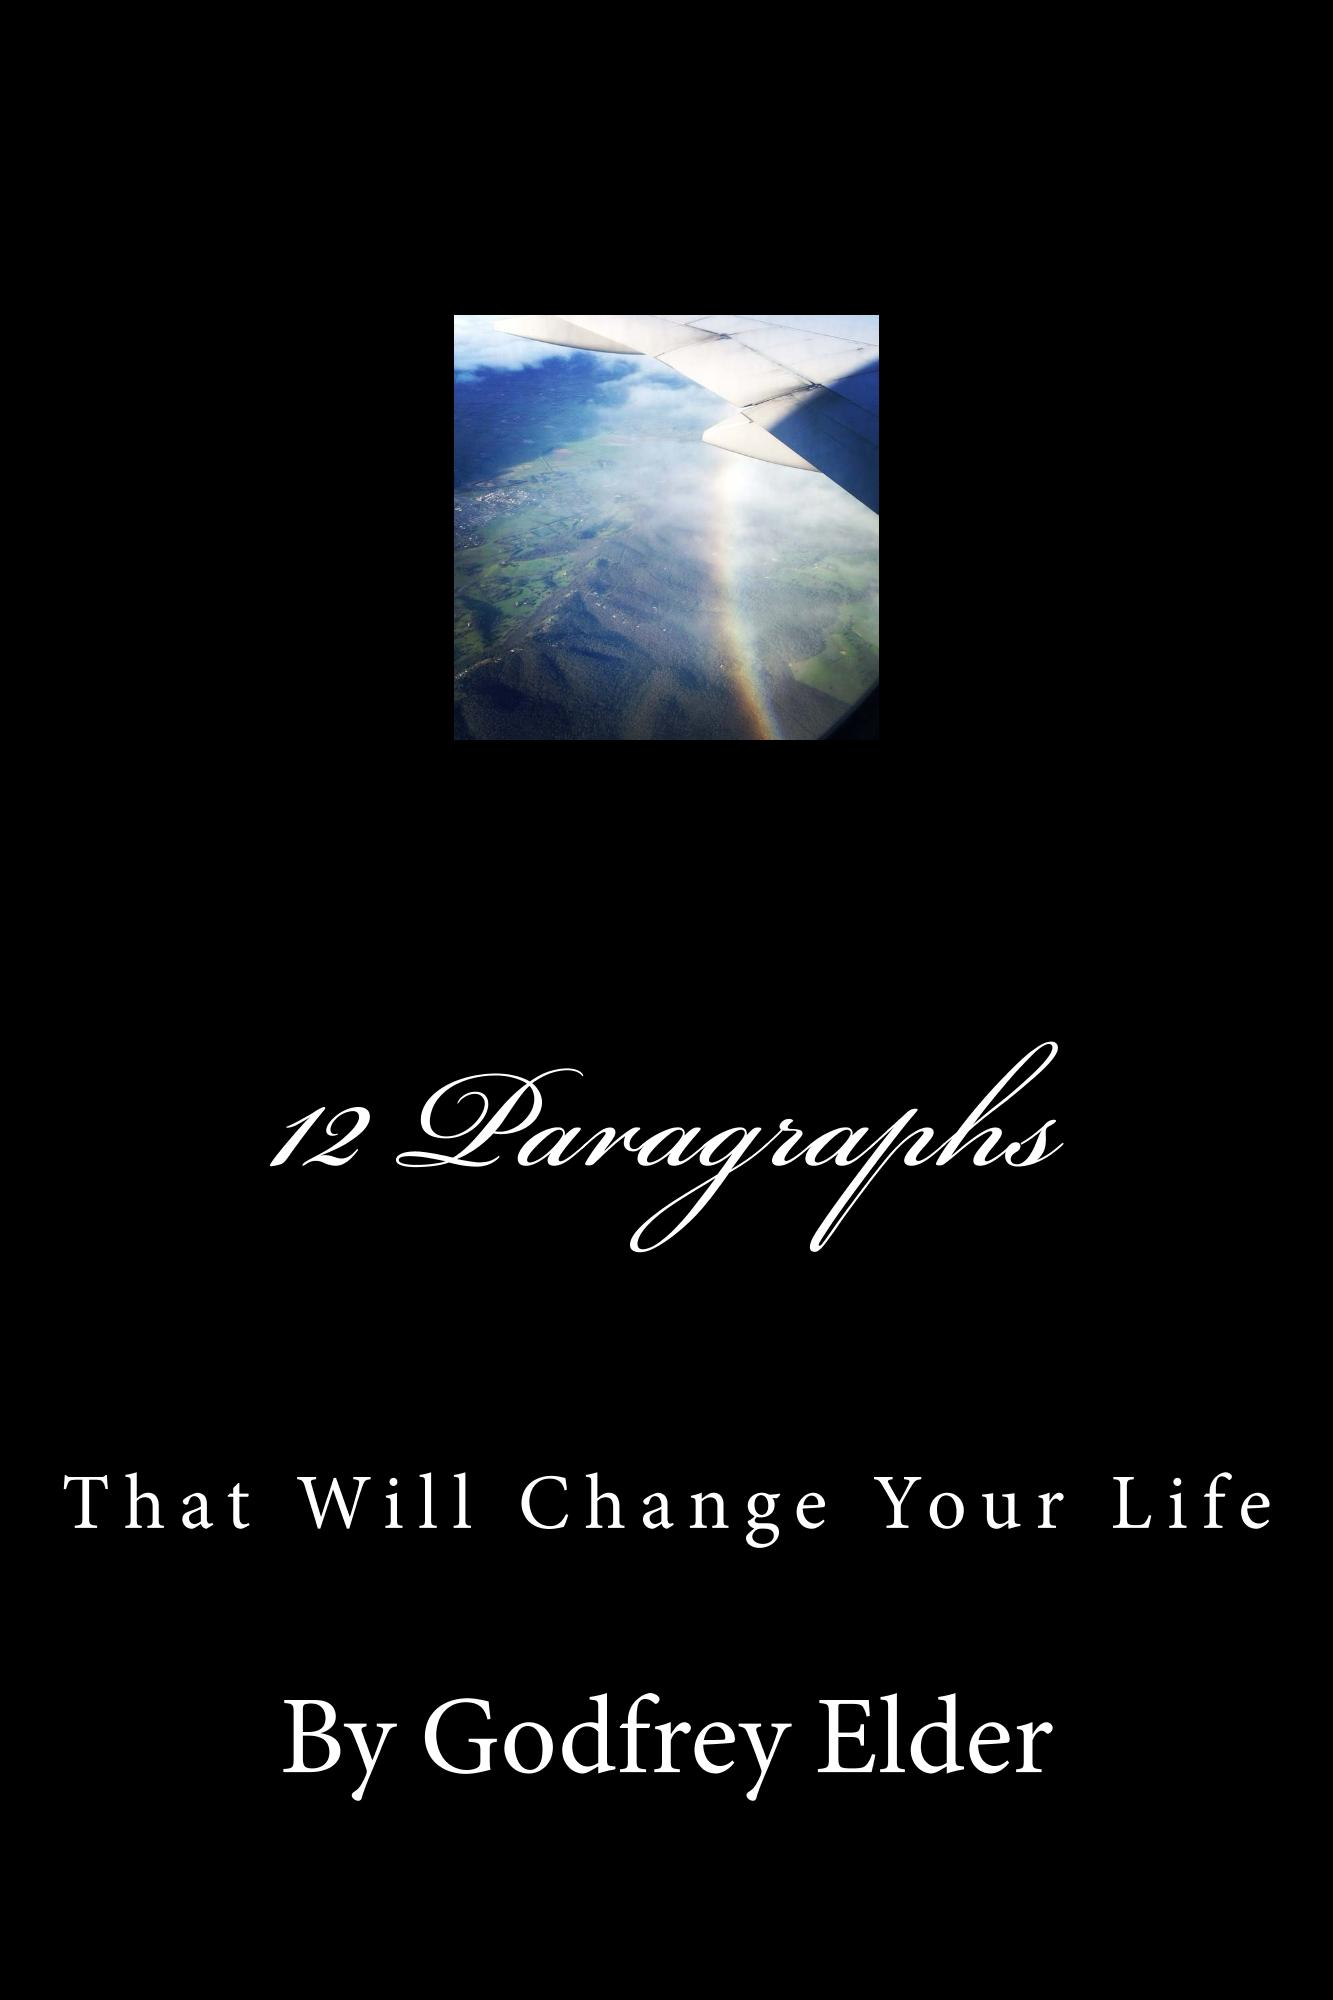 12_Paragraphs_That_W_Cover_for_Kindle.jpg